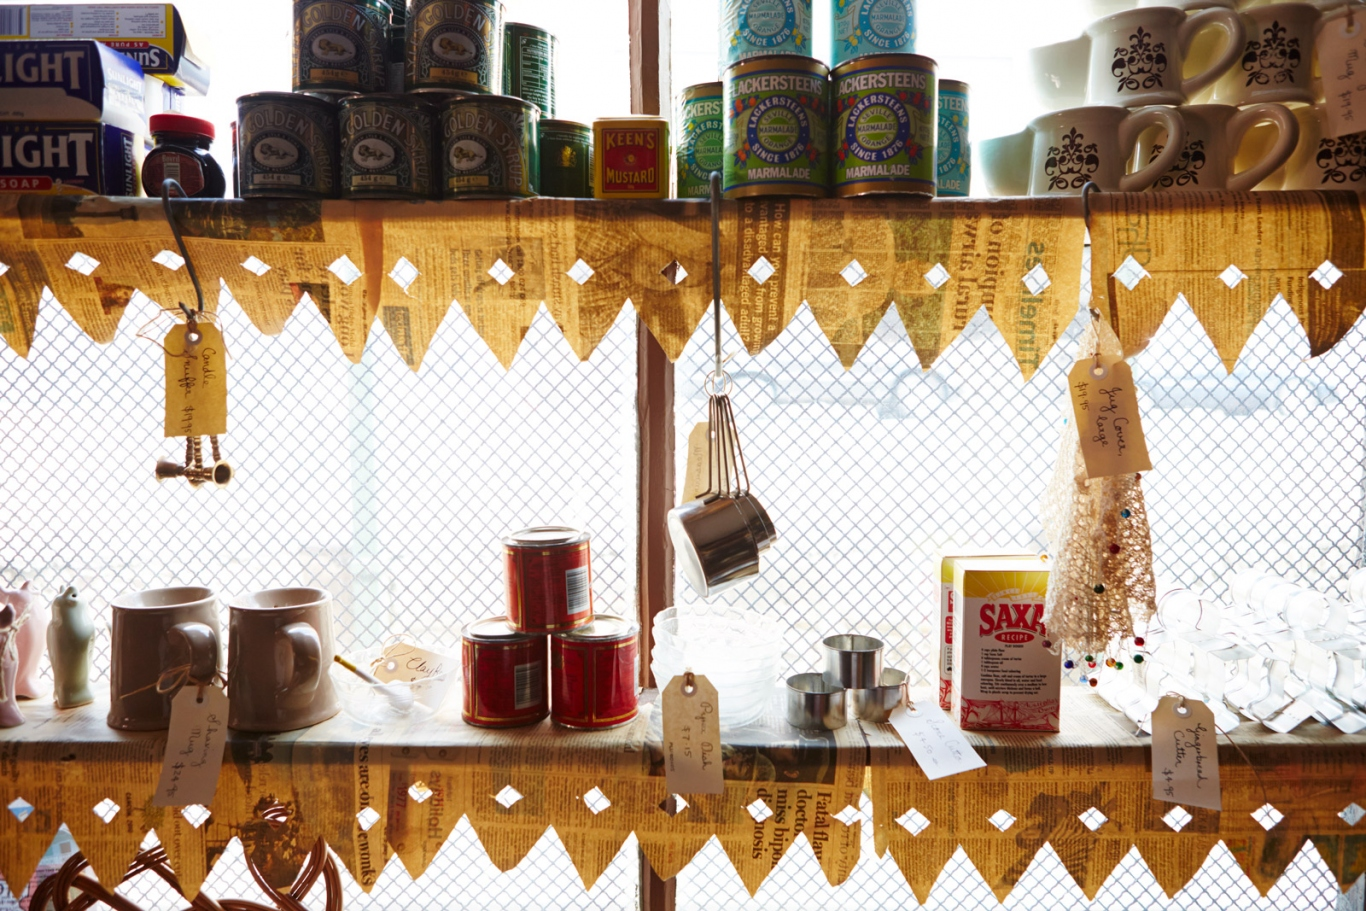 Goods for sale in the window of the corner shop